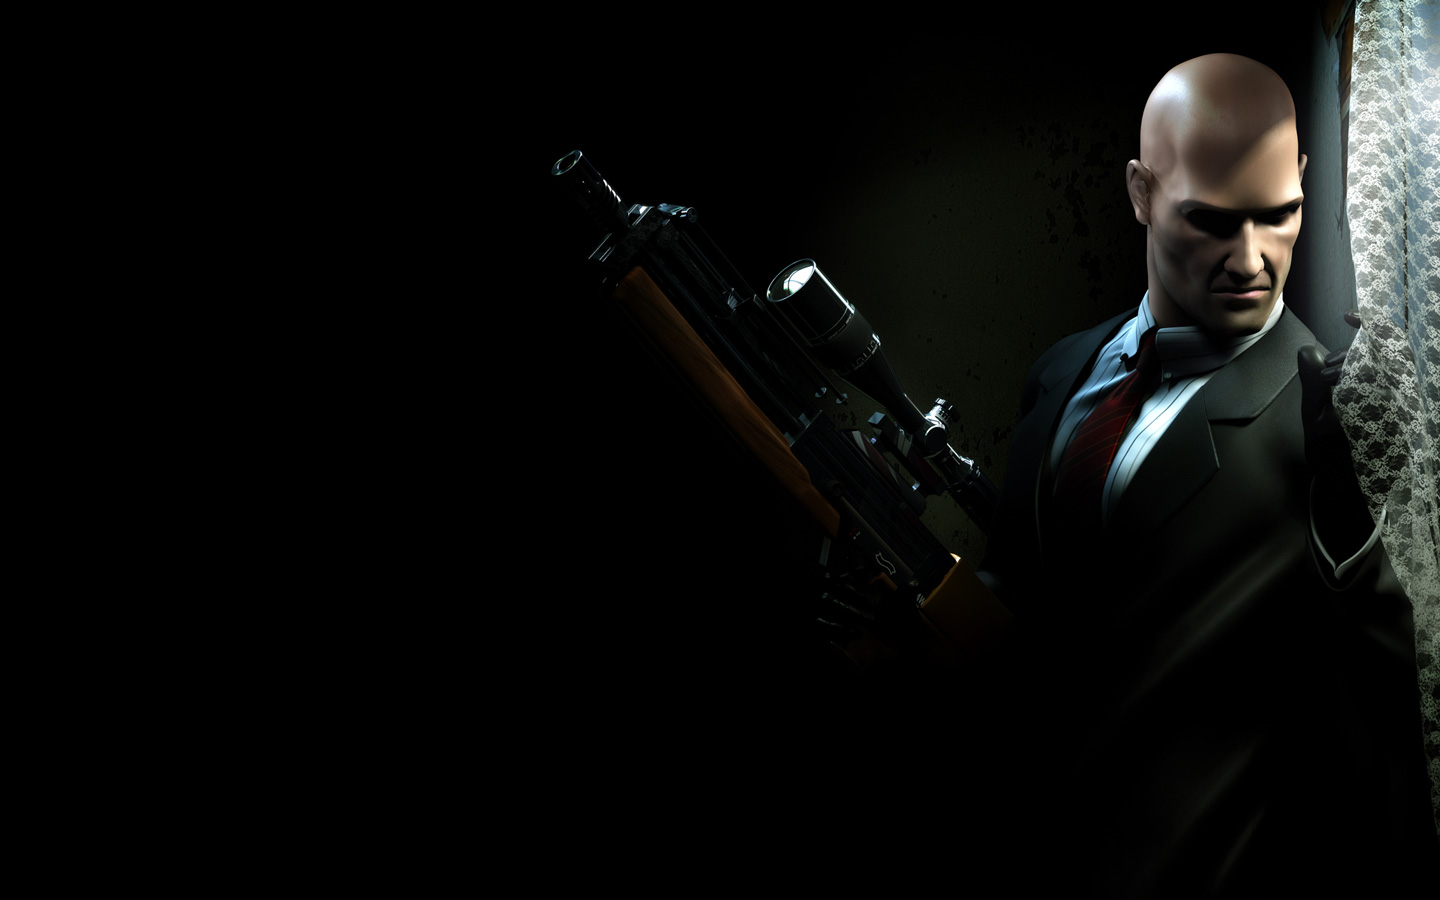 Free Hitman: Contracts Wallpaper in 1440x900